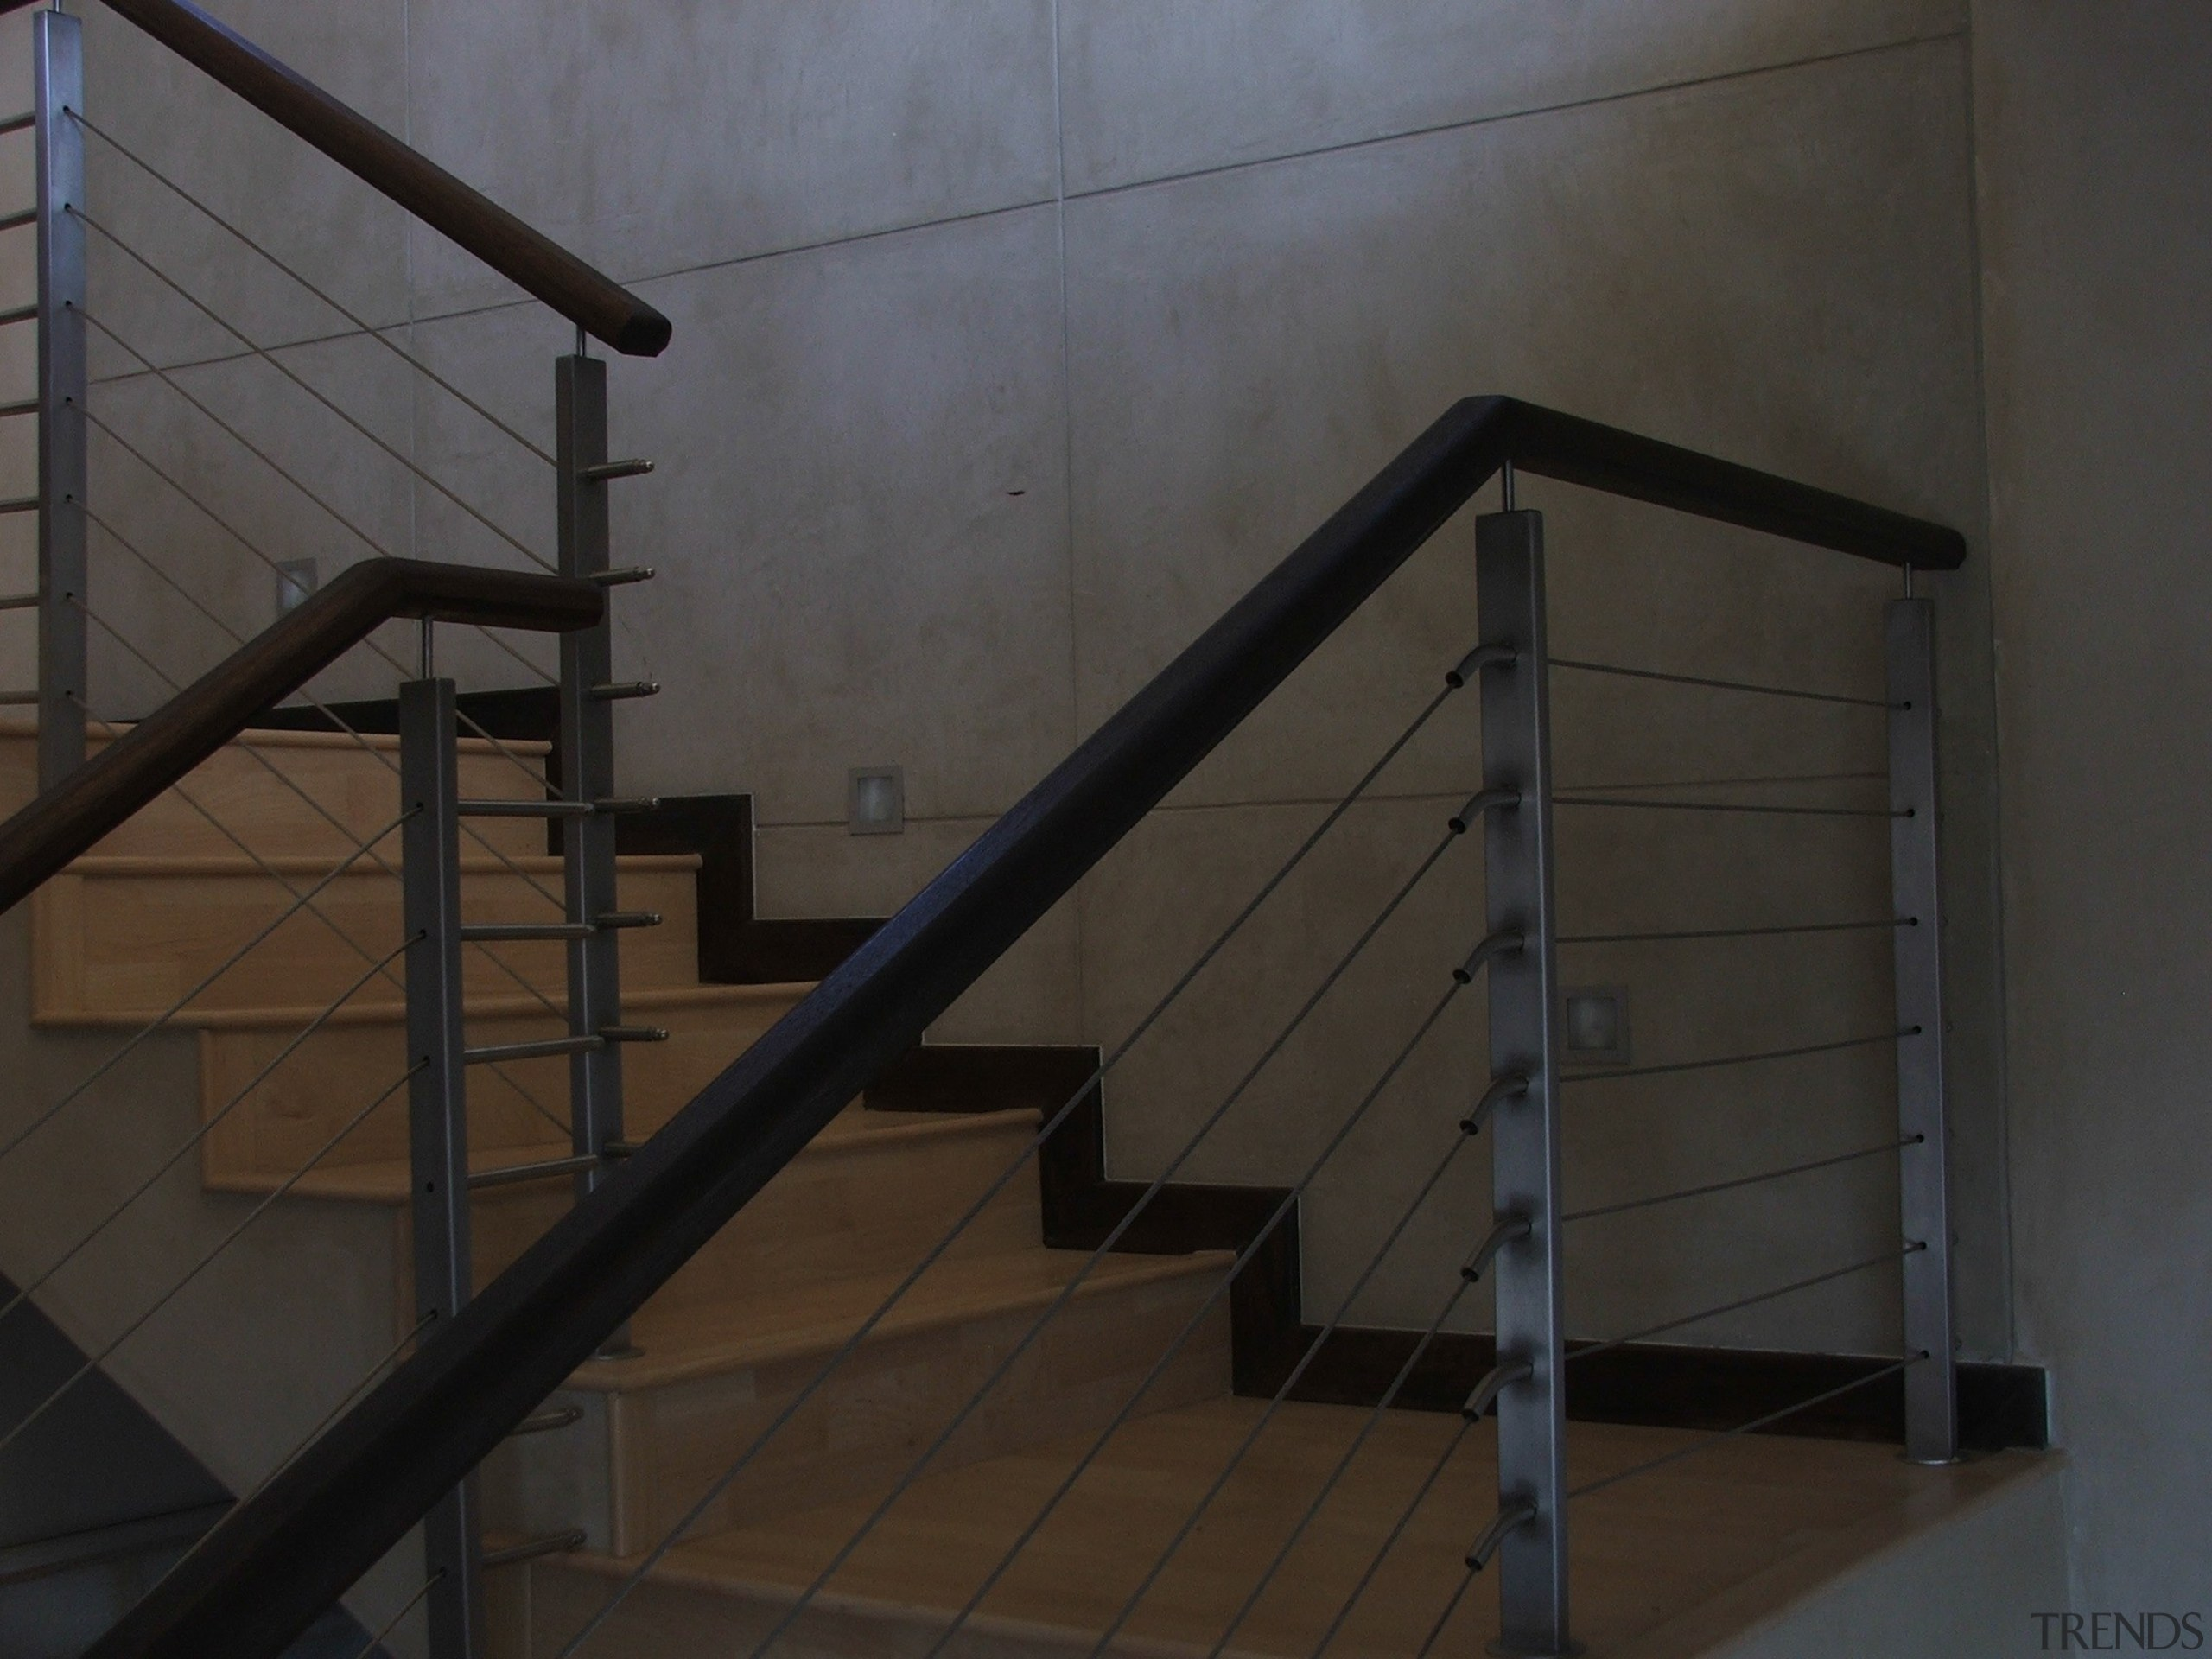 Micro Topping 31 - Micro Topping_31 - glass glass, handrail, iron, material, stairs, steel, structure, black